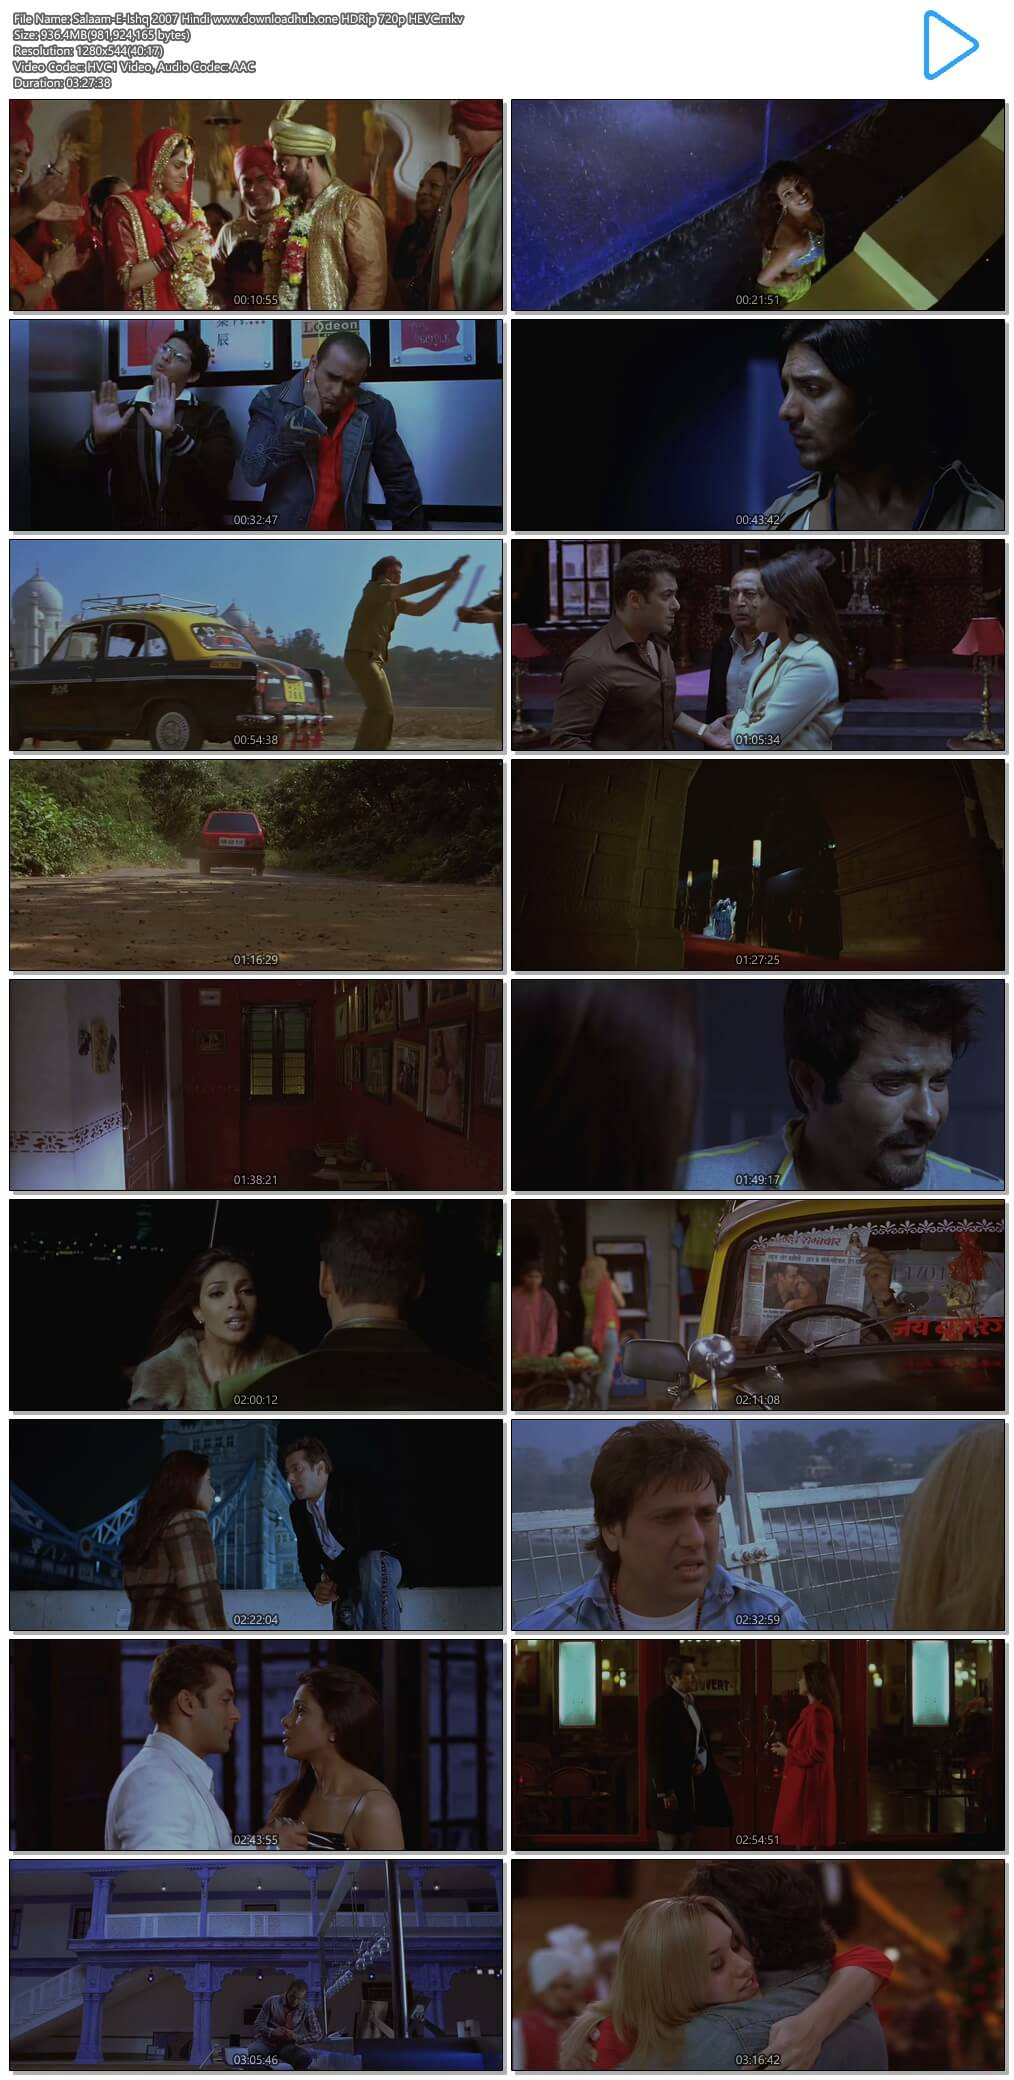 Salaam-E-Ishq 2007 Hindi 900MB HDRip 720p HEVC